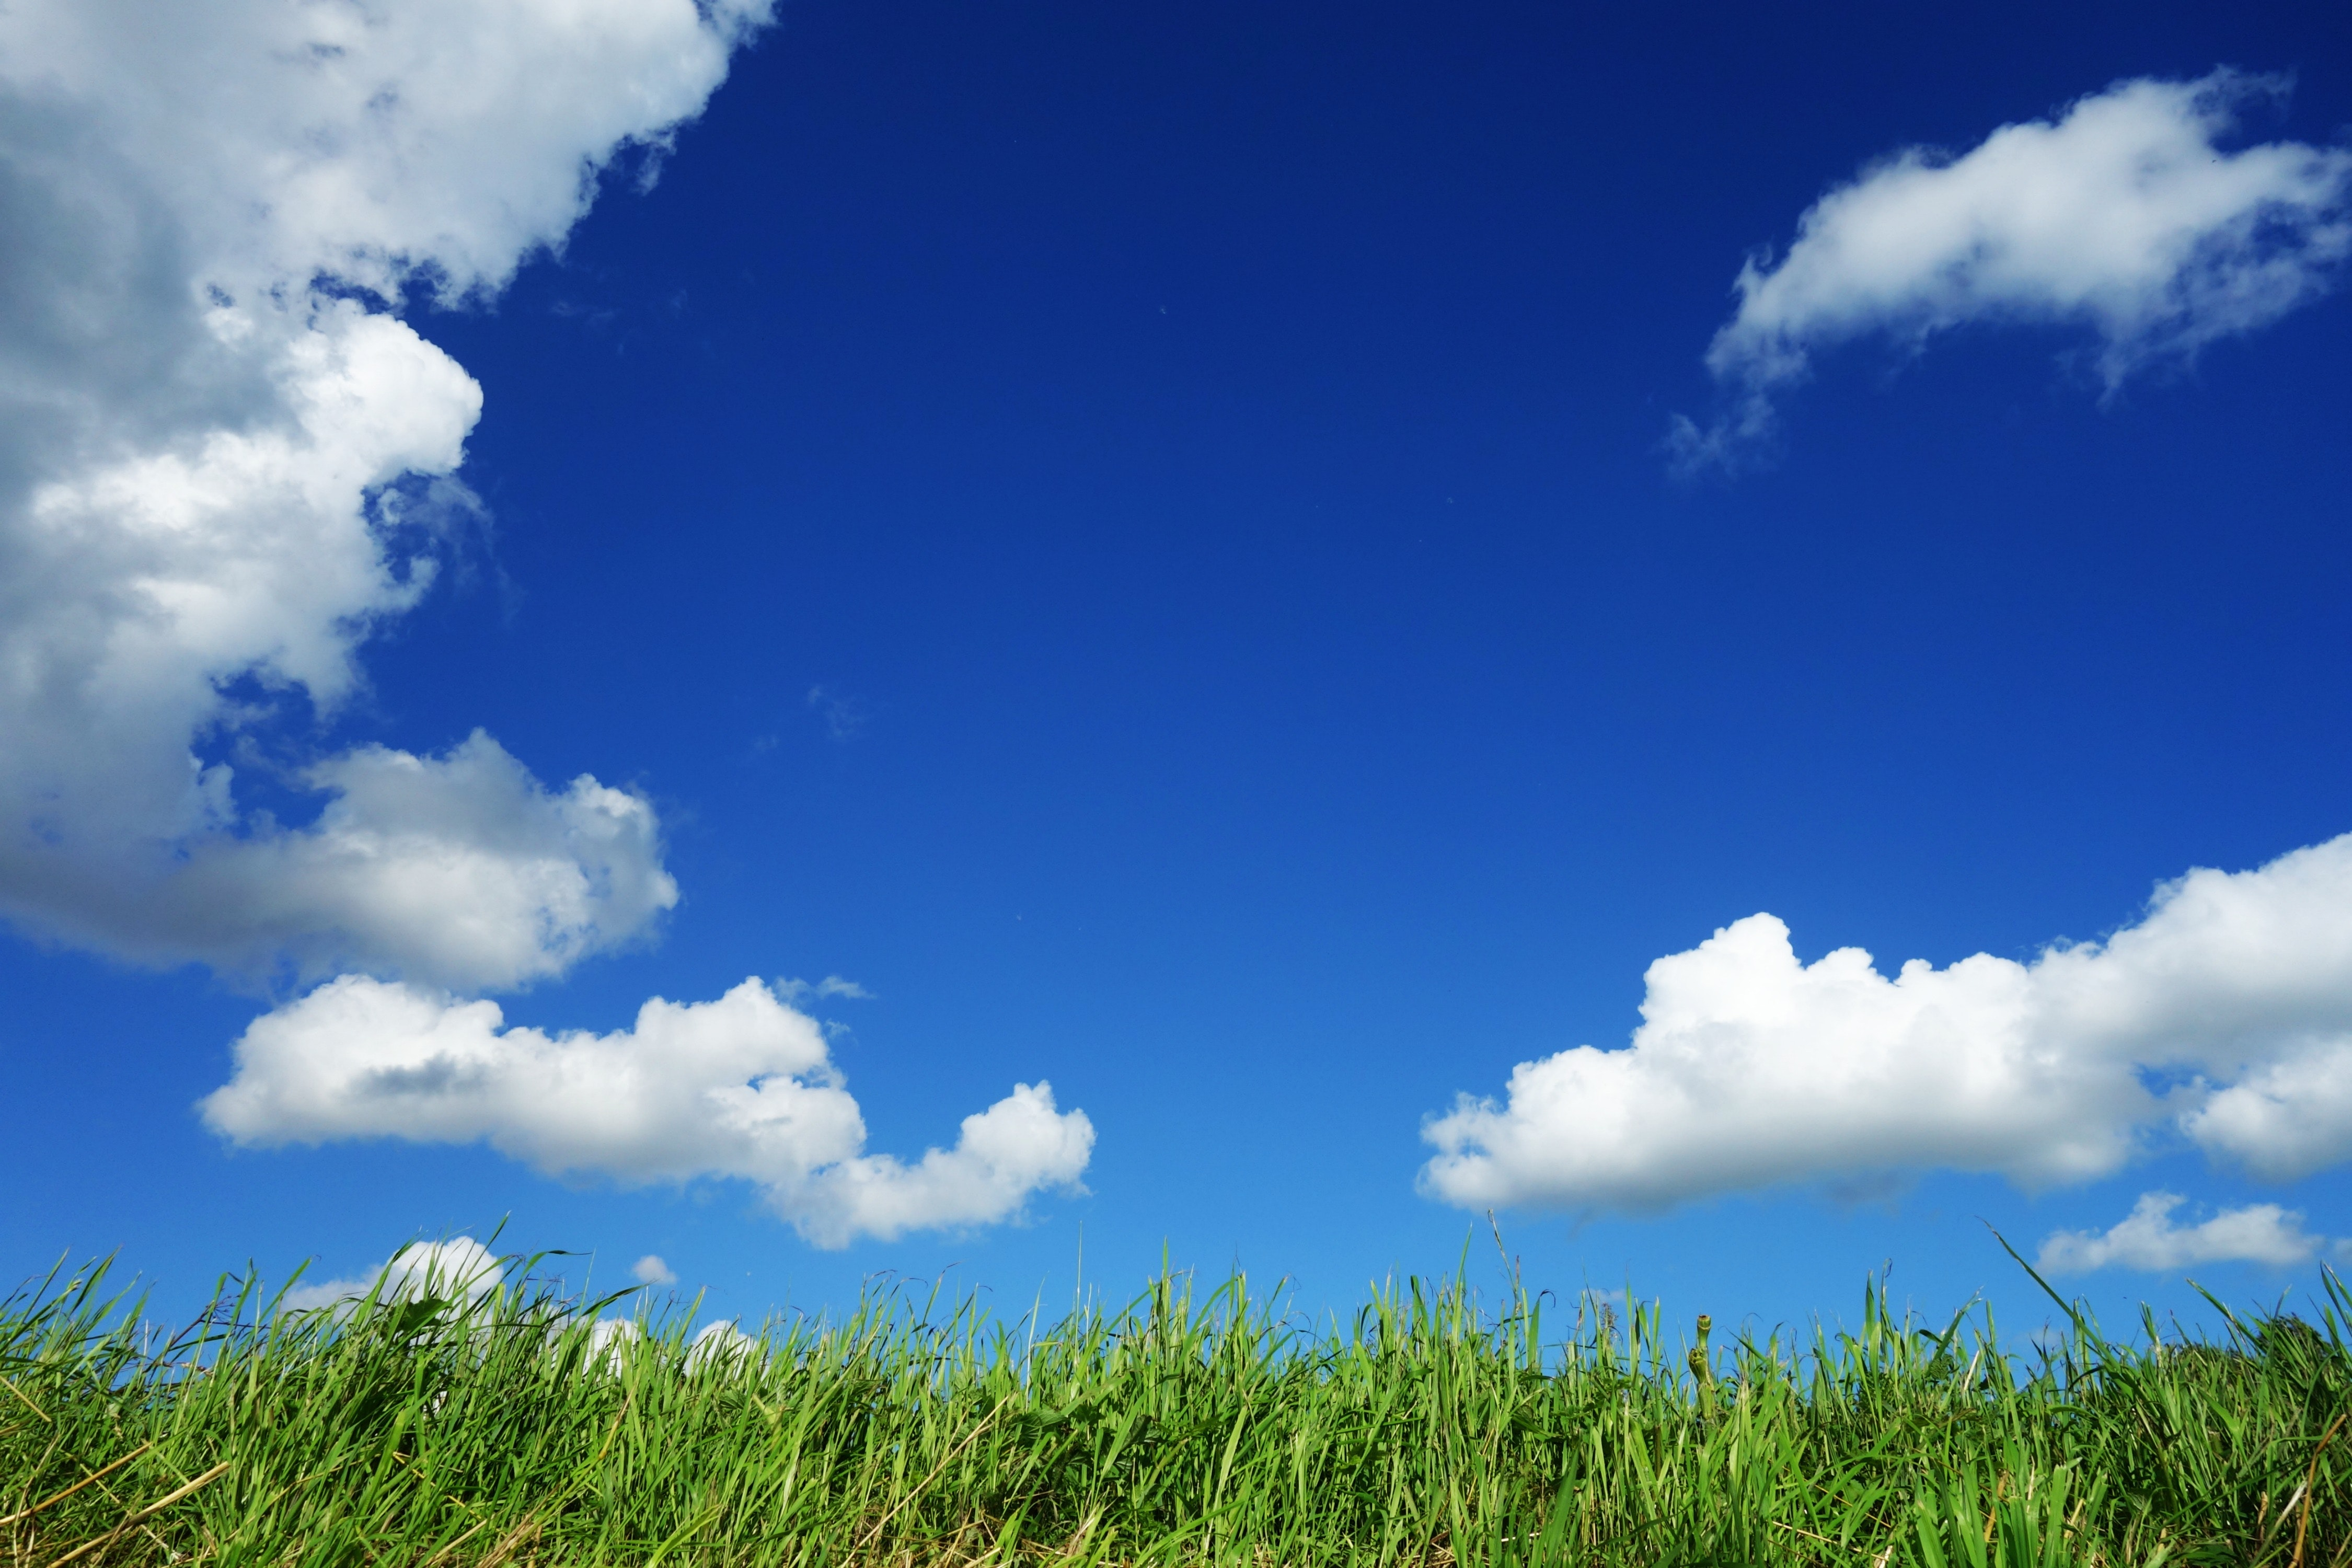 Grass Field Under Cloudy Sky · Free Stock Photo